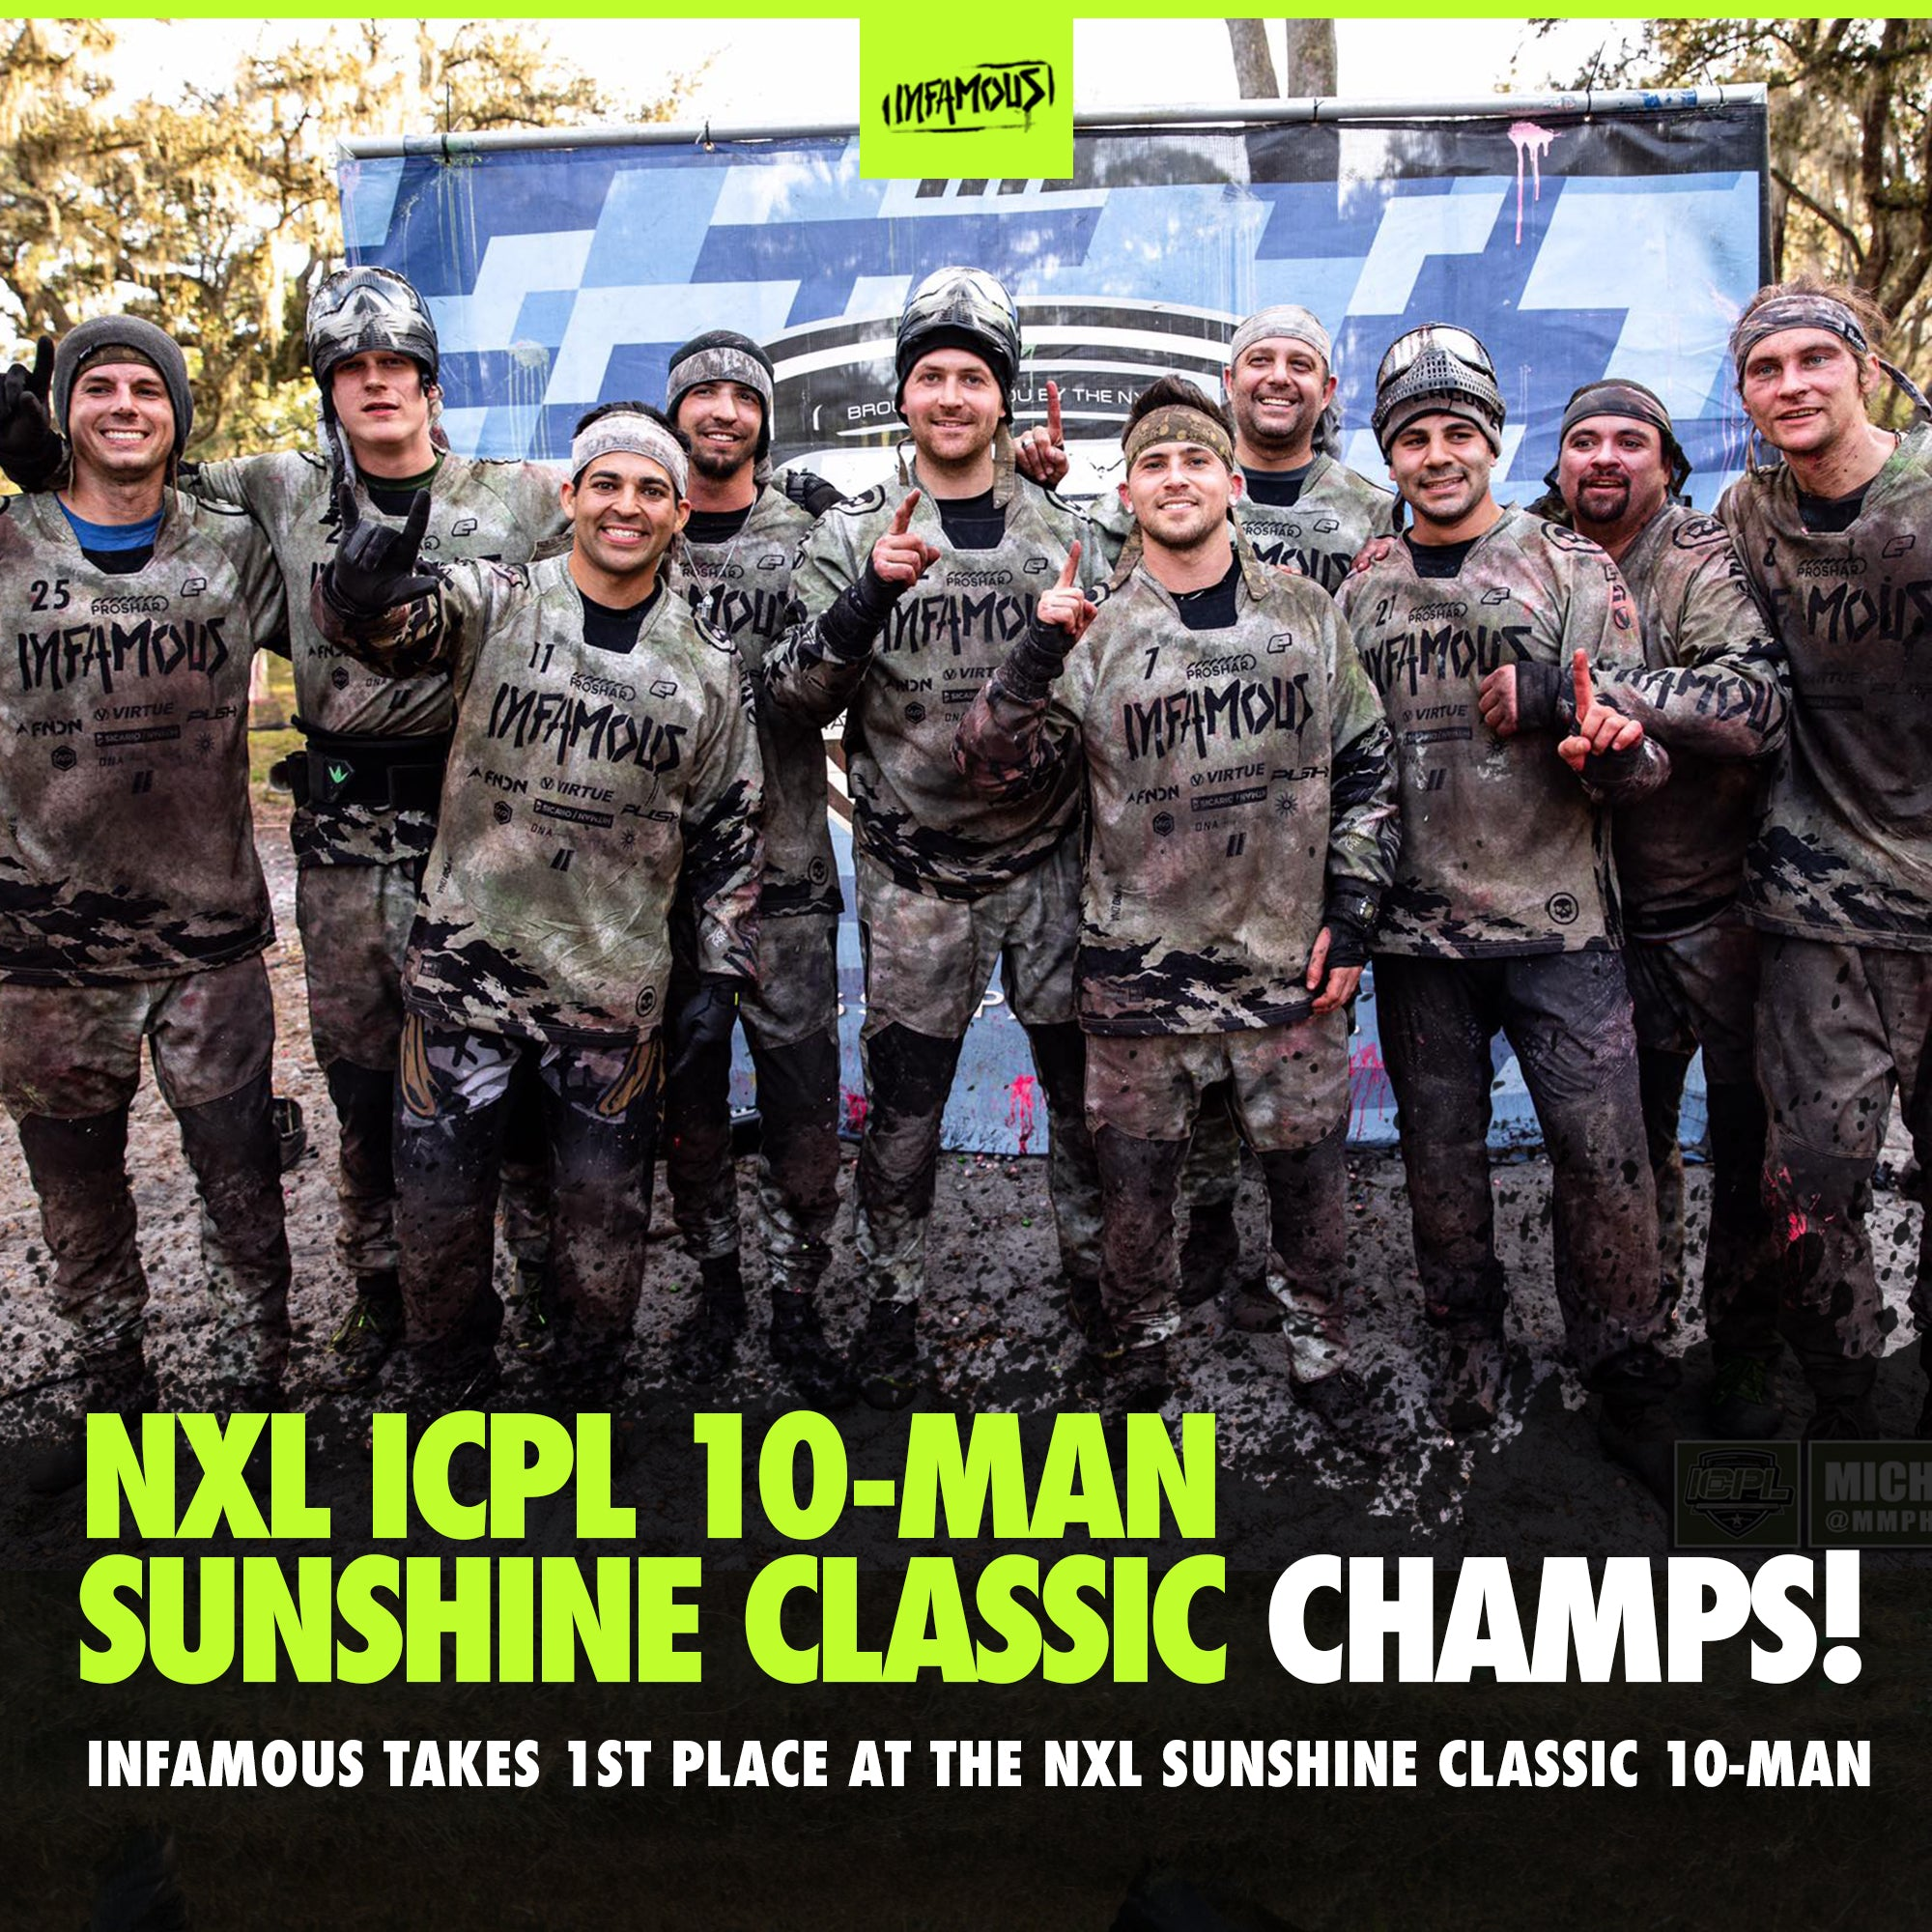 Infamous WINS the NXL Sunshine Classic